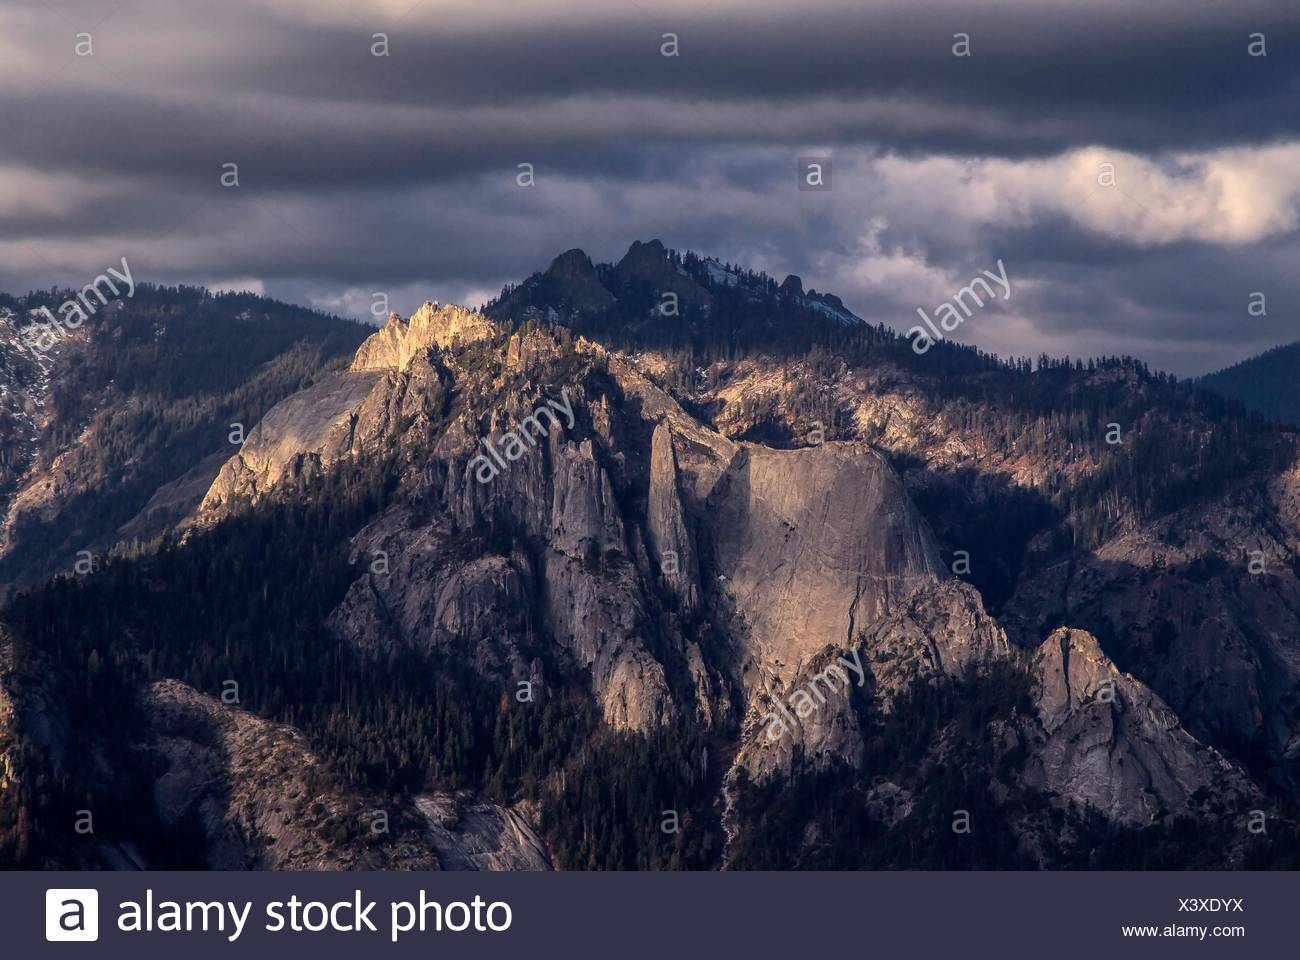 Light from the setting sun shines on Castle Rocks at Sequoia National Park, California. - Stock Image